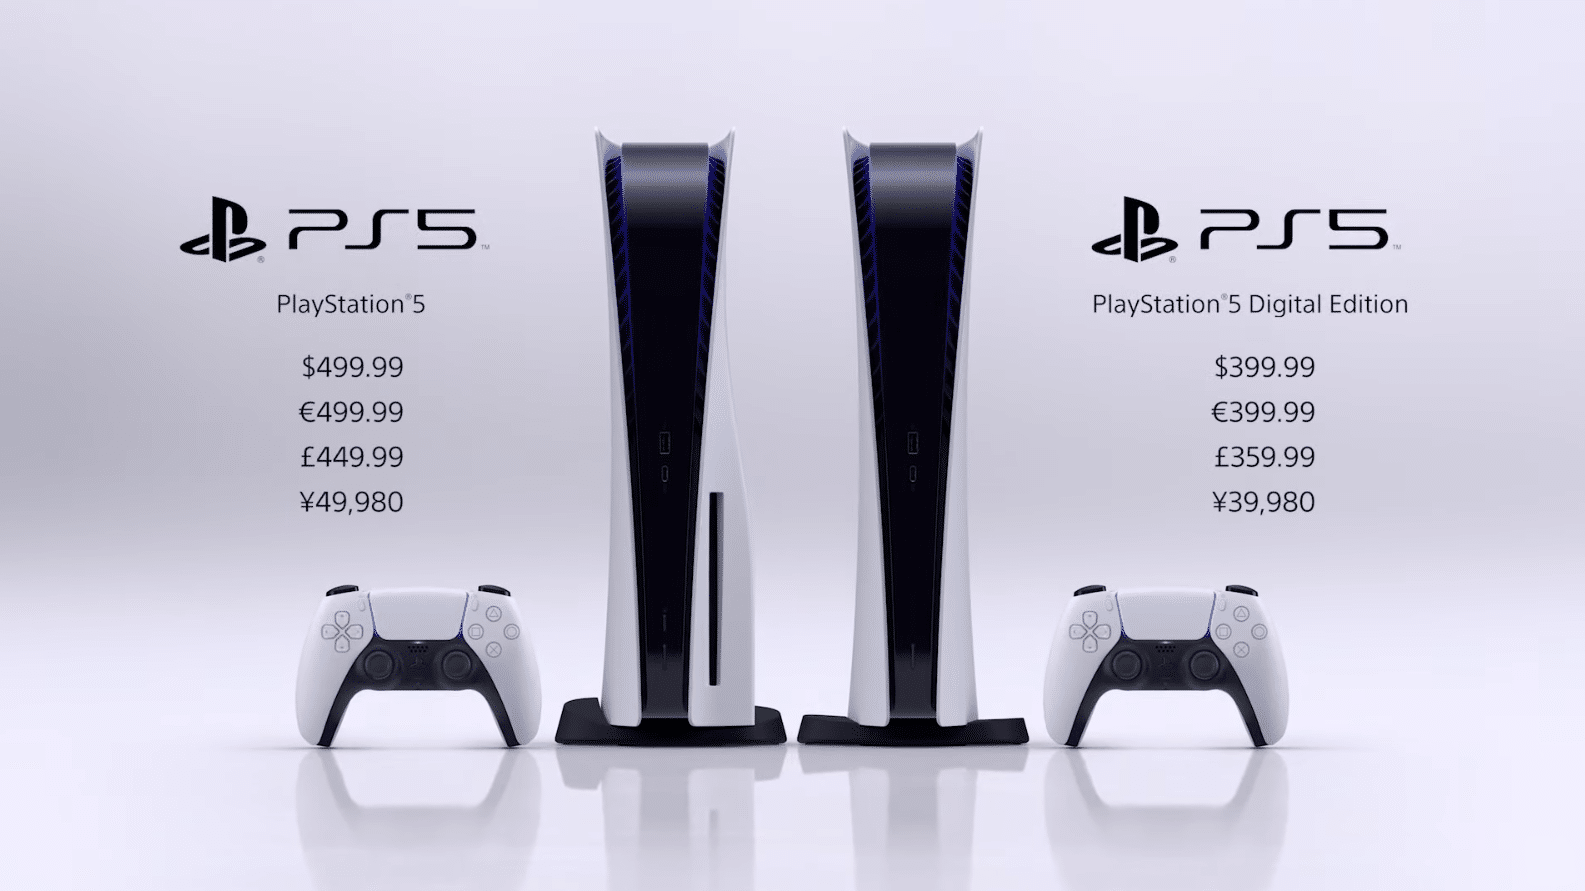 playstation 5 prices in various countries